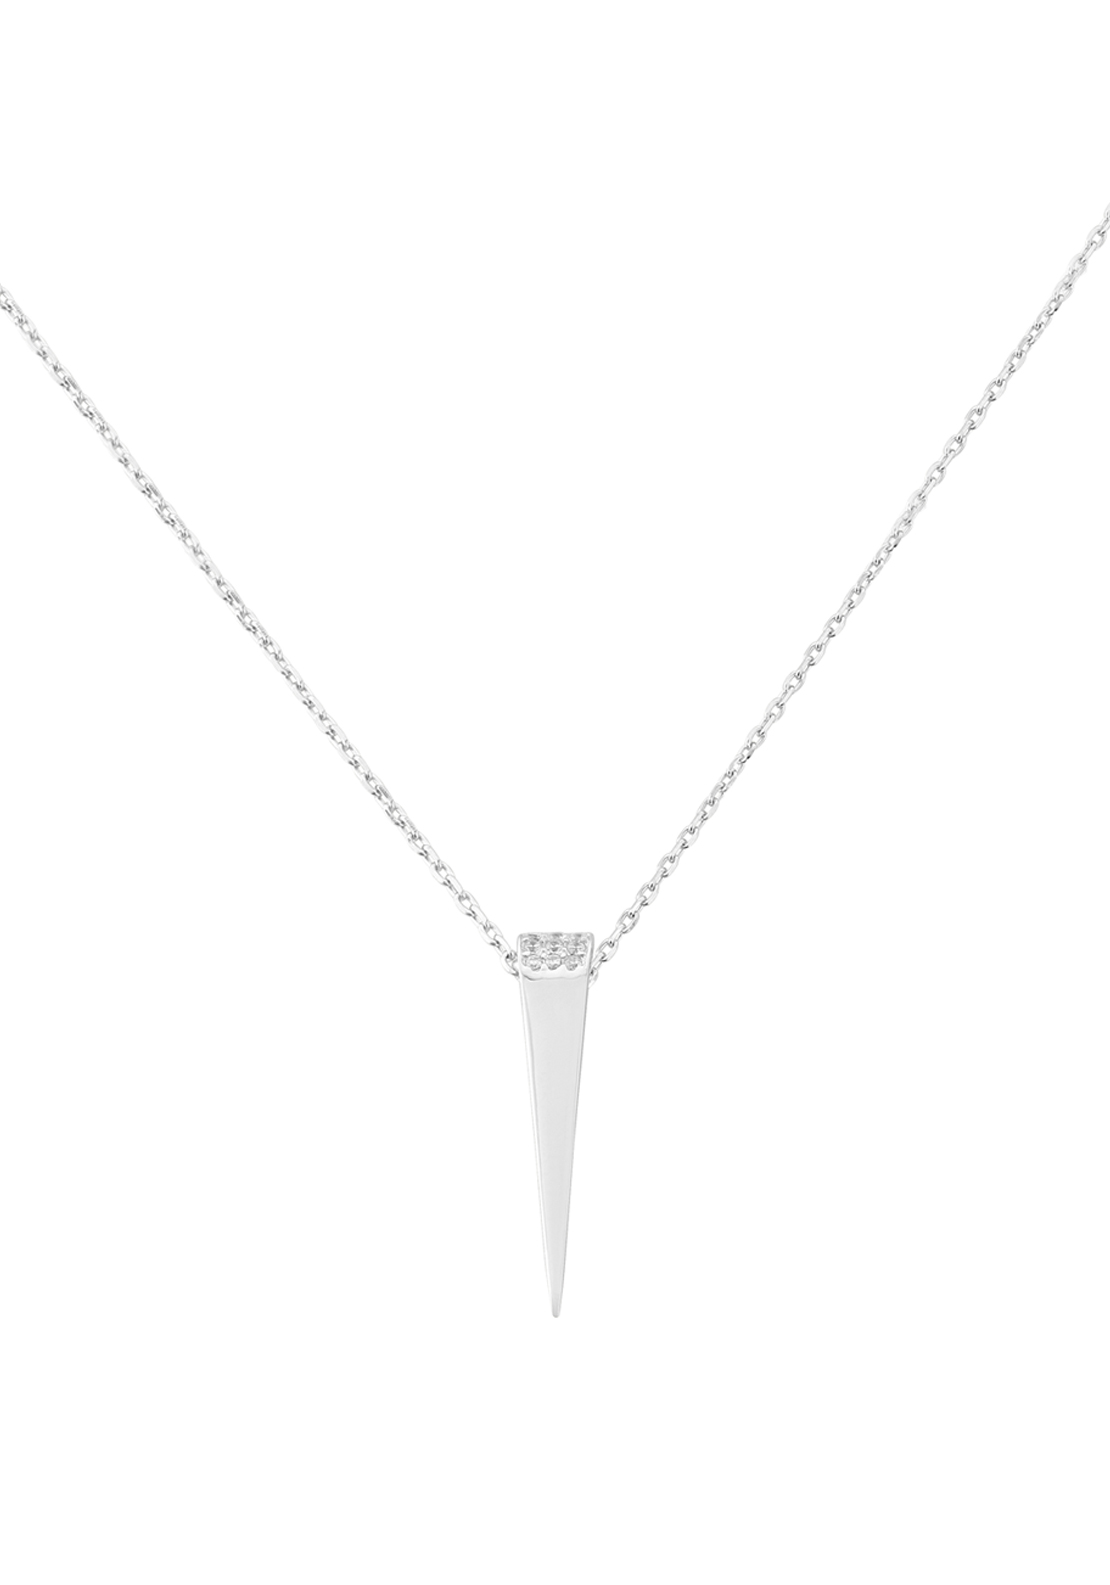 Waterford Crystal Pave Studded Dagger Pendant Necklace, Silver